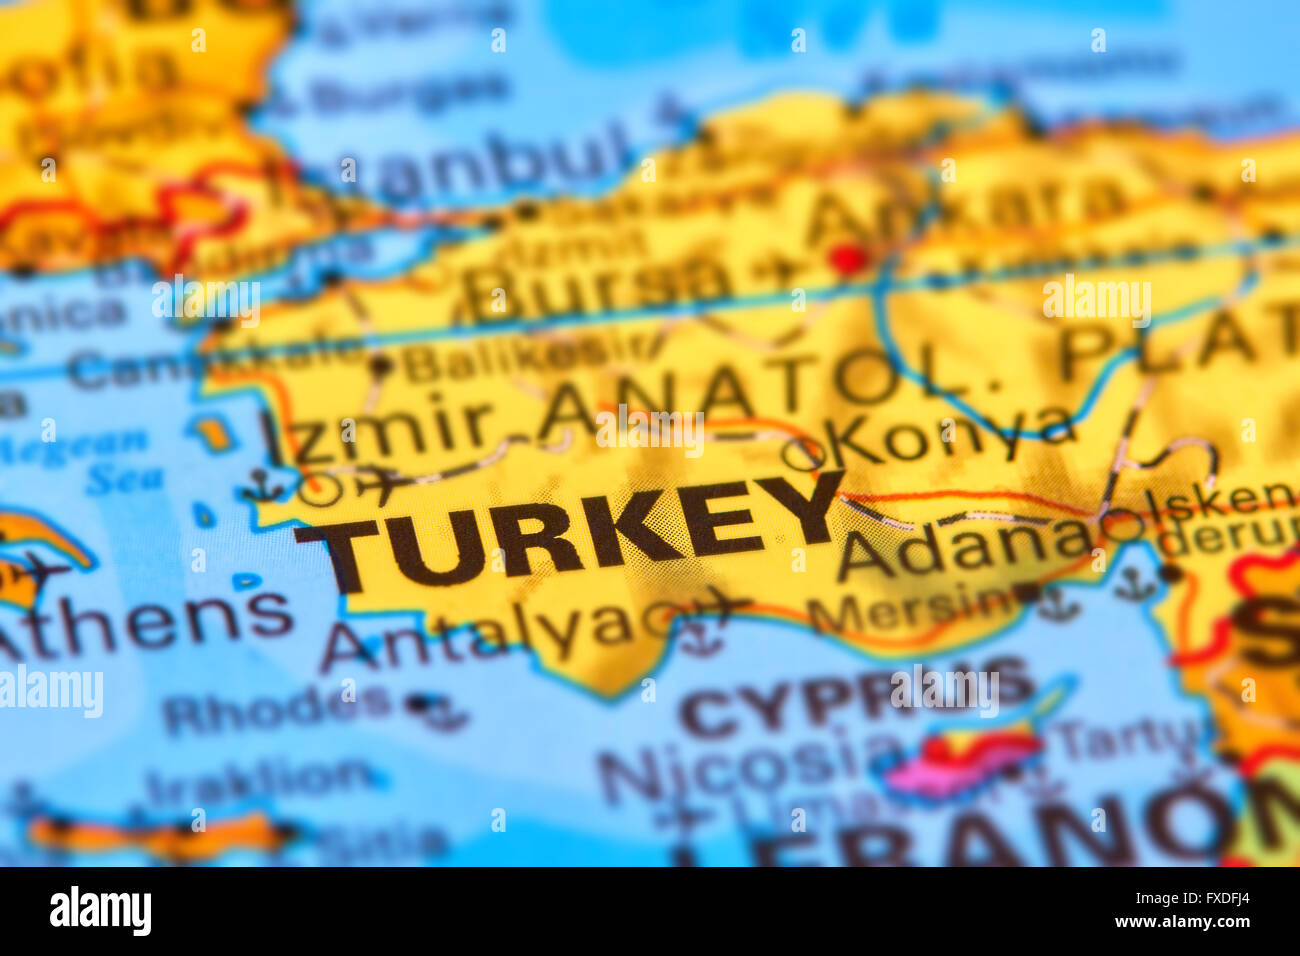 Map europe asia stock photos map europe asia stock images alamy turkey country in europe and asia on the world map stock image gumiabroncs Choice Image